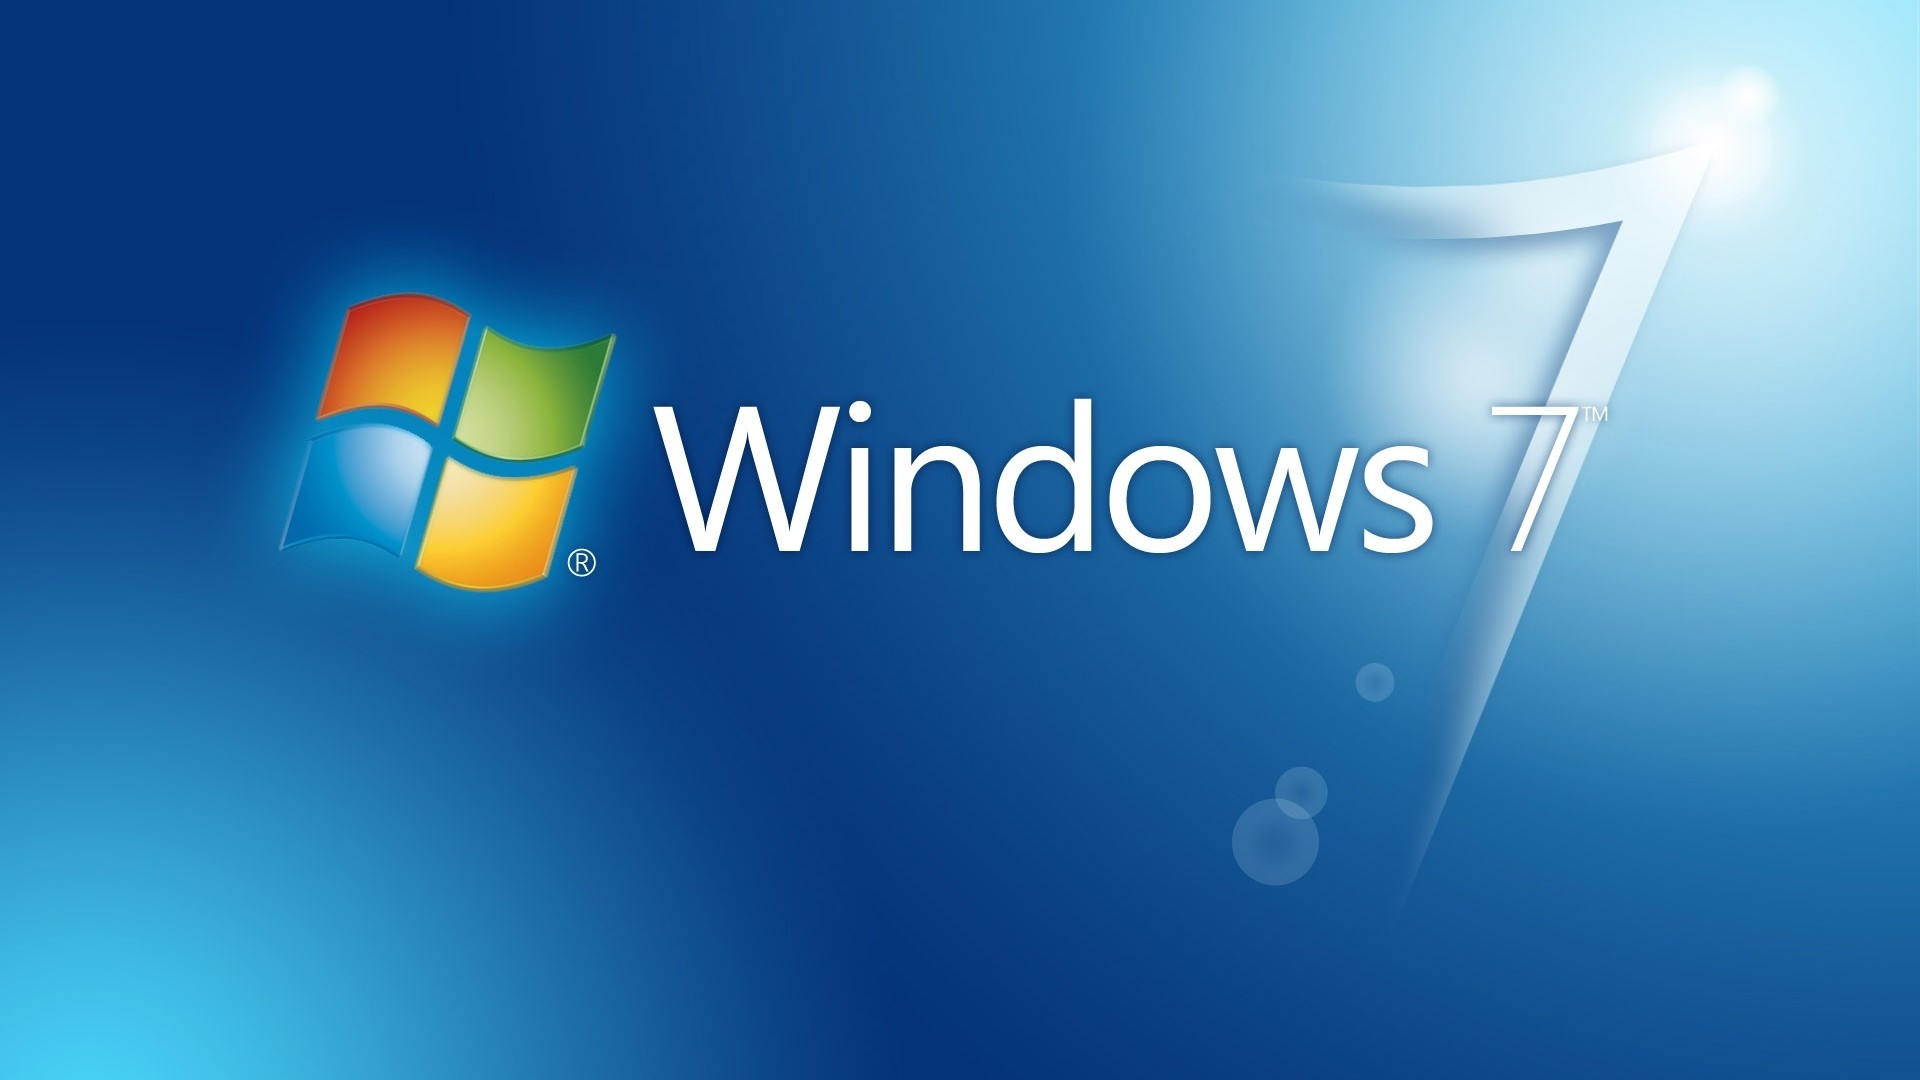 Desktop Wallpaper Windows 7 69 Pictures